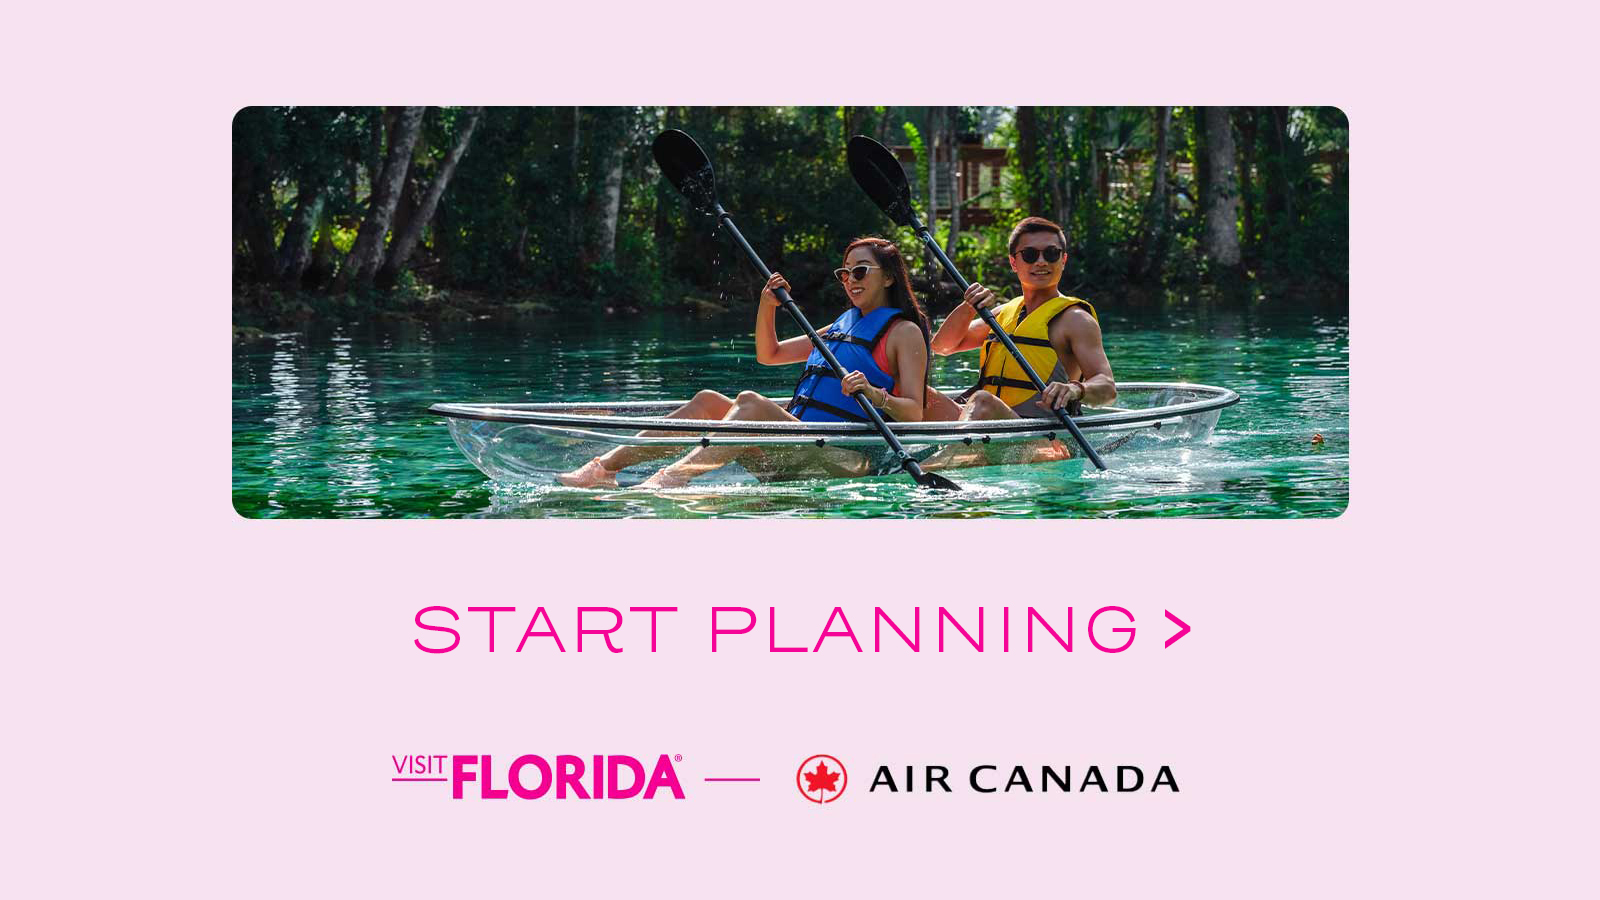 Visit Florida with Air Canada